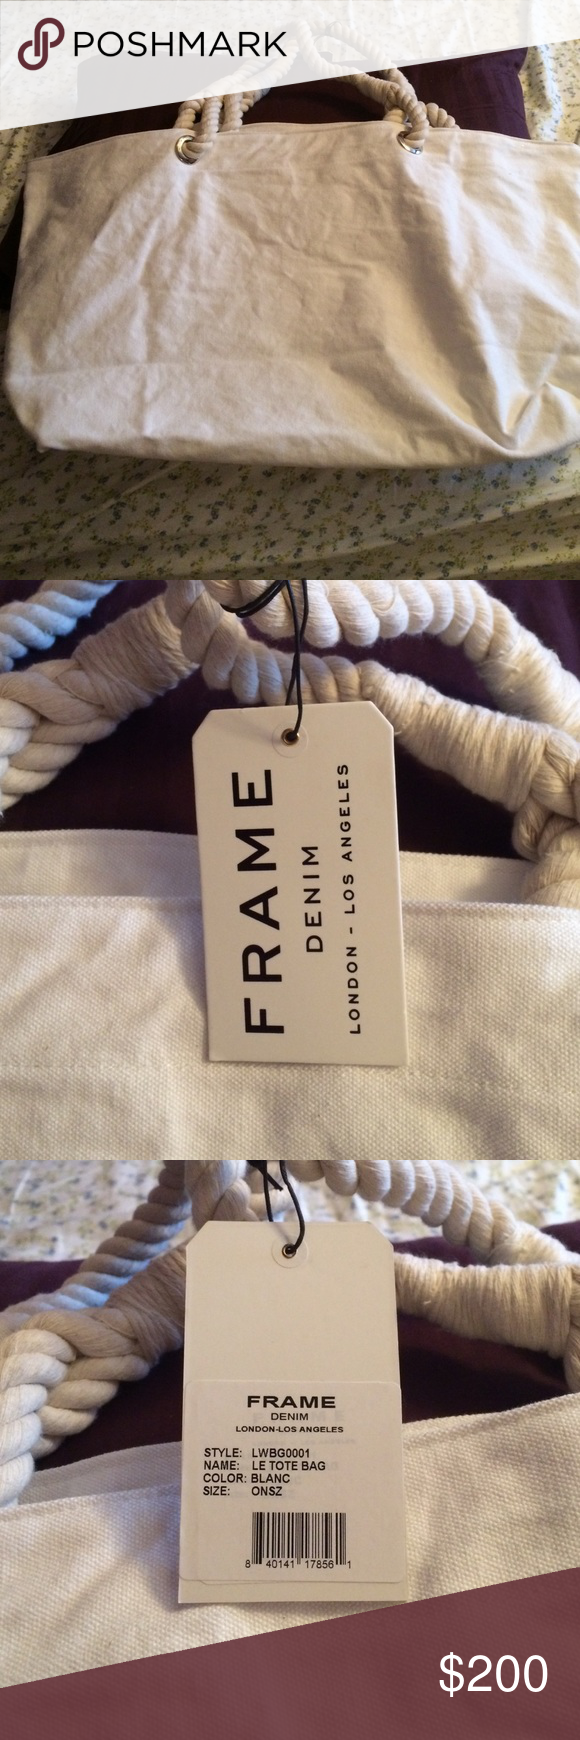 Frame London Oversized Tote From Paris I won it in a shopping spree in Paris!! This is designer label, Worn by Beyoncé, Kim Kardashian, you can google the store Frame Denim! FRAME DENIM Bags Totes